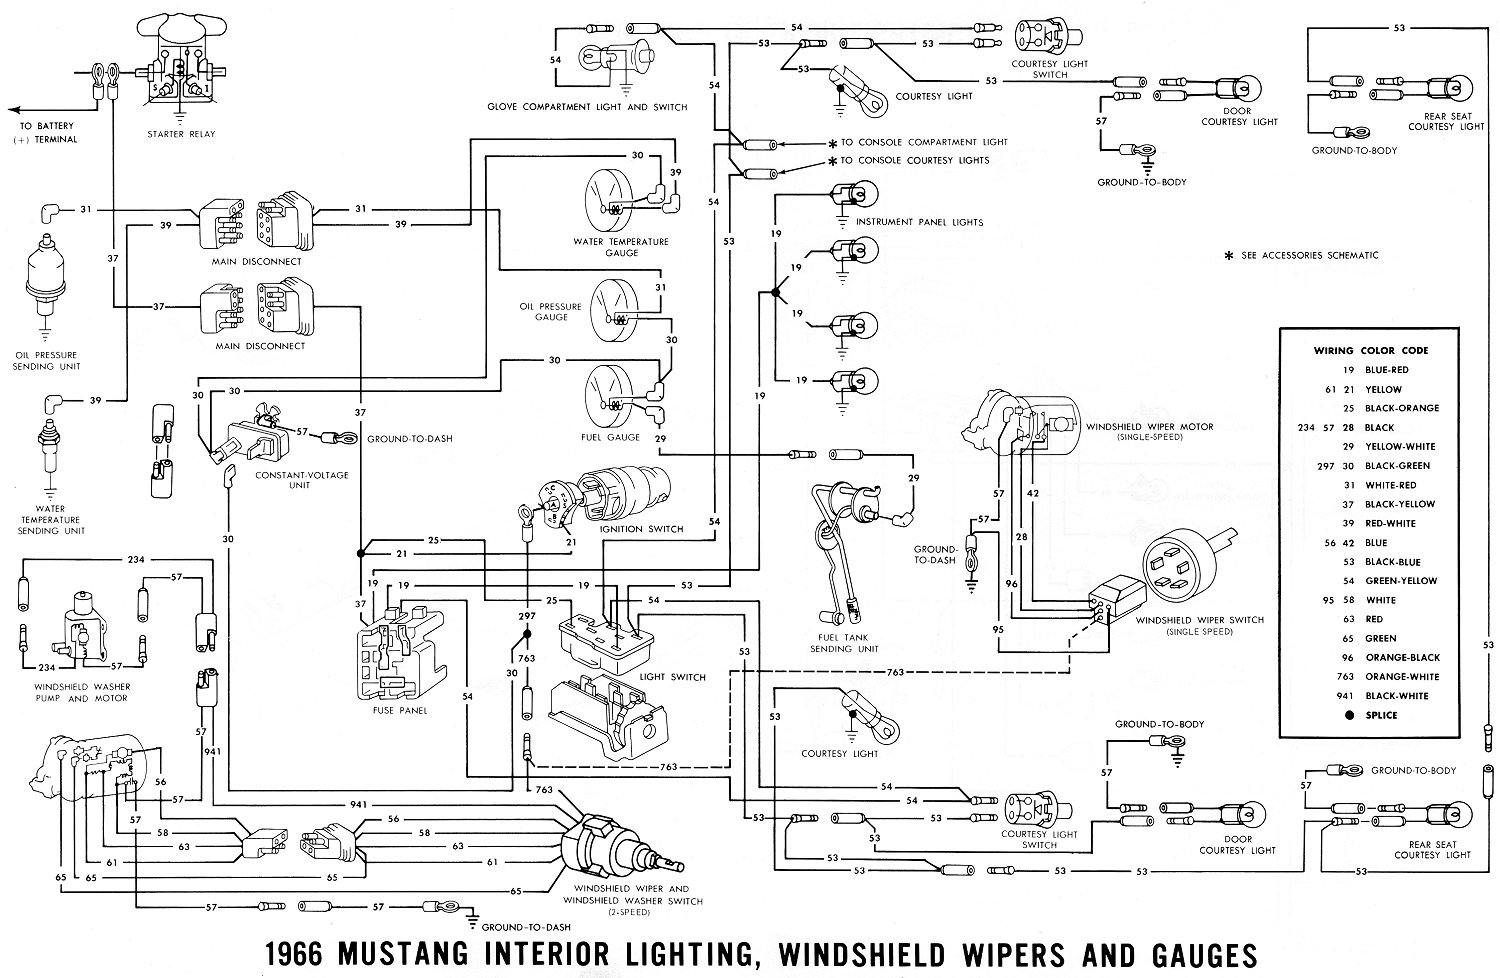 1966 mustang wiring diagrams average joe restoration rh averagejoerestoration com 66 mustang wiring harness install 1966 mustang wiring harness diagram